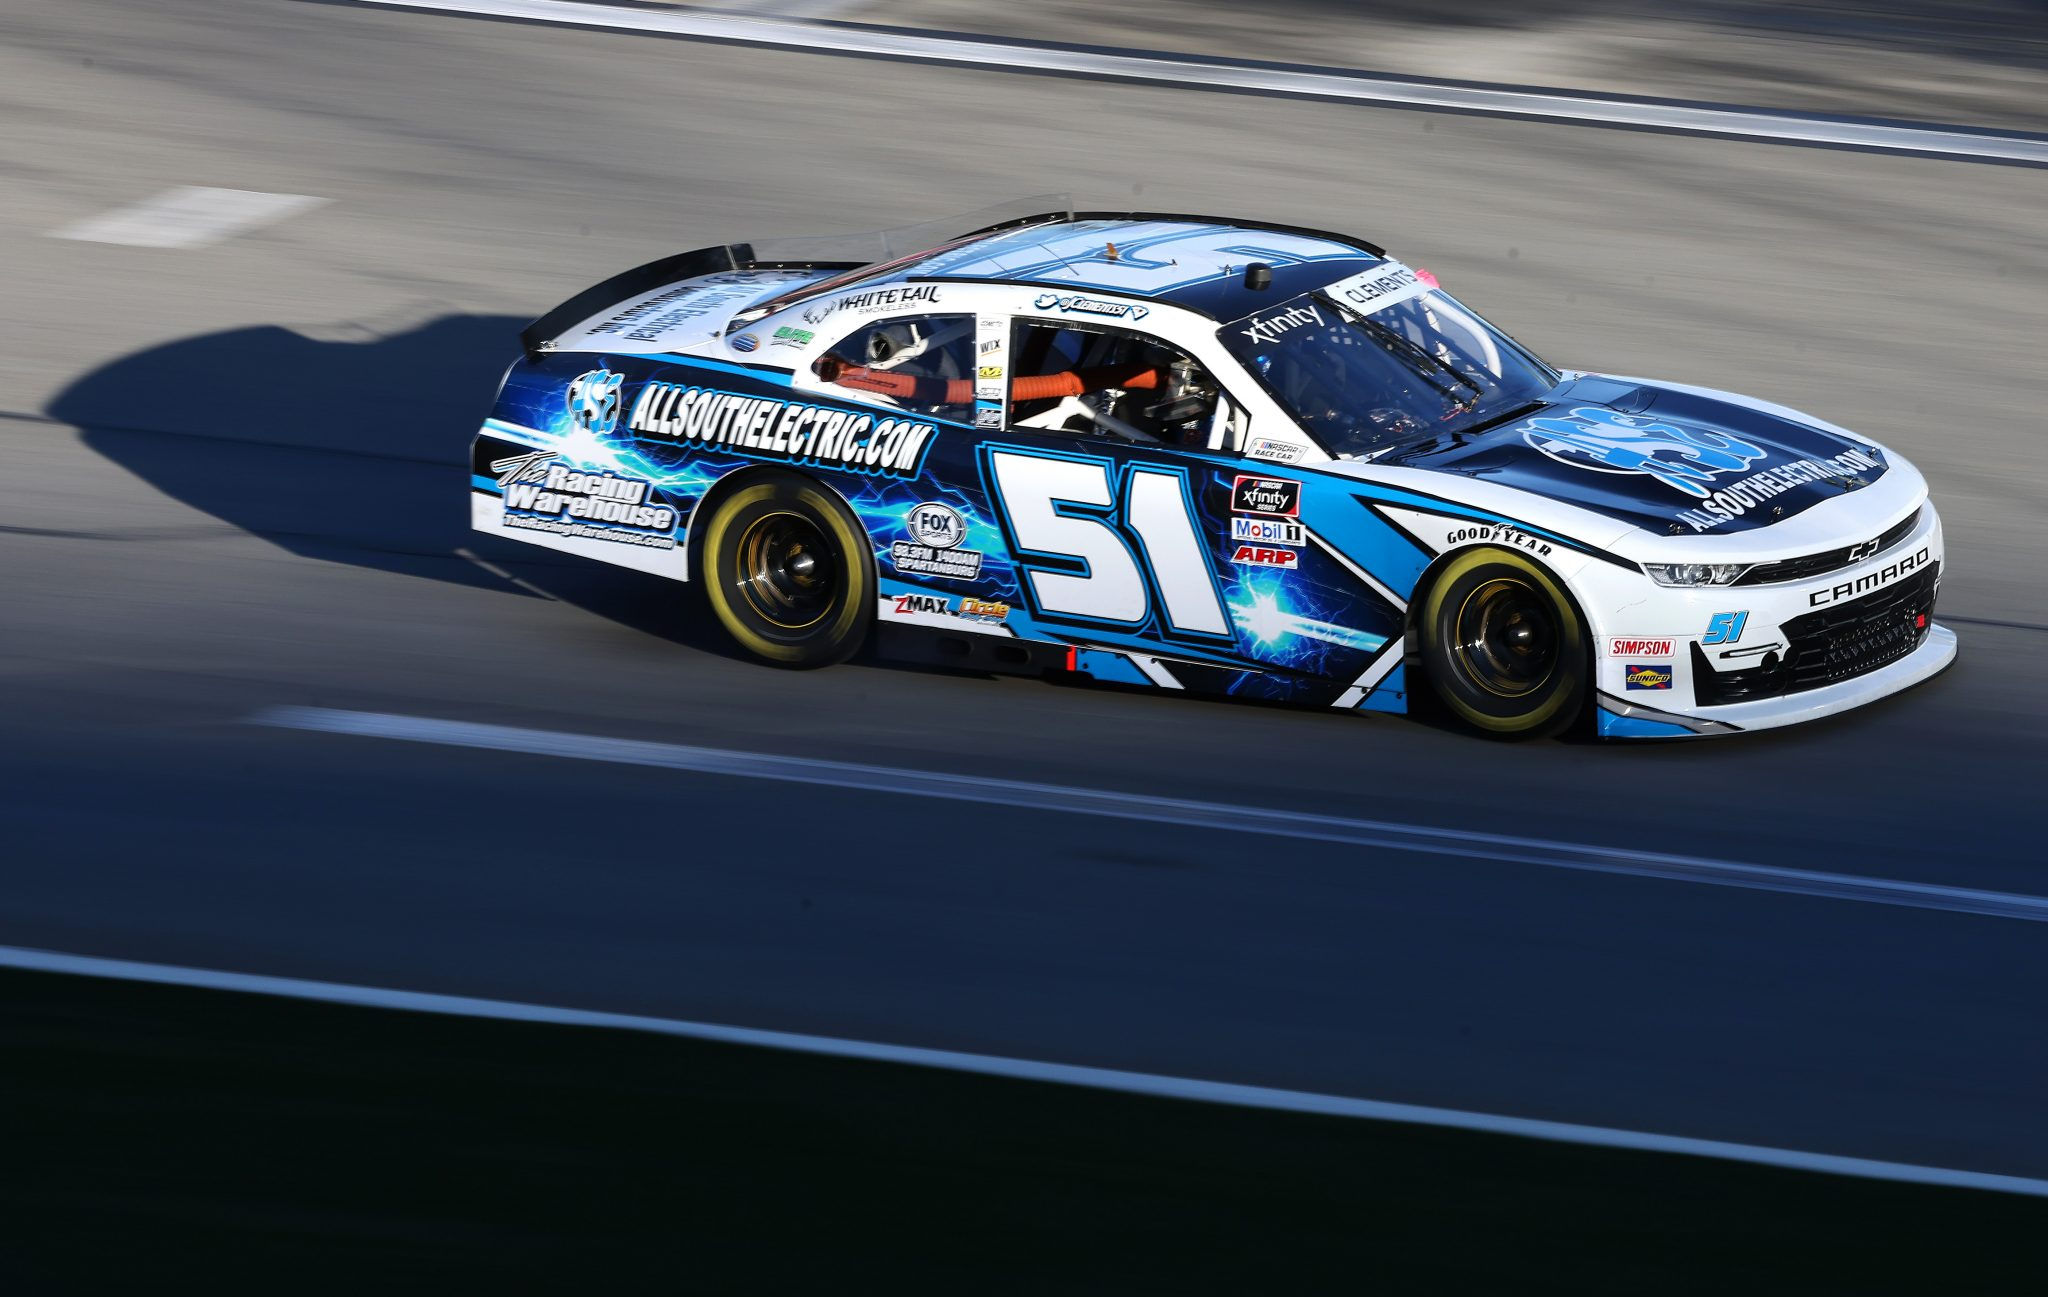 DAYTONA BEACH, FLORIDA - FEBRUARY 20: Jeremy Clements, driver of the #51 All South Electric Chevrolet, drives during the NASCAR Xfinity Super Start Batteries 188 At Daytona Presented by O'Reilly at Daytona International Speedway on February 20, 2021 in Daytona Beach, Florida. (Photo by James Gilbert/Getty Images) | Getty Images